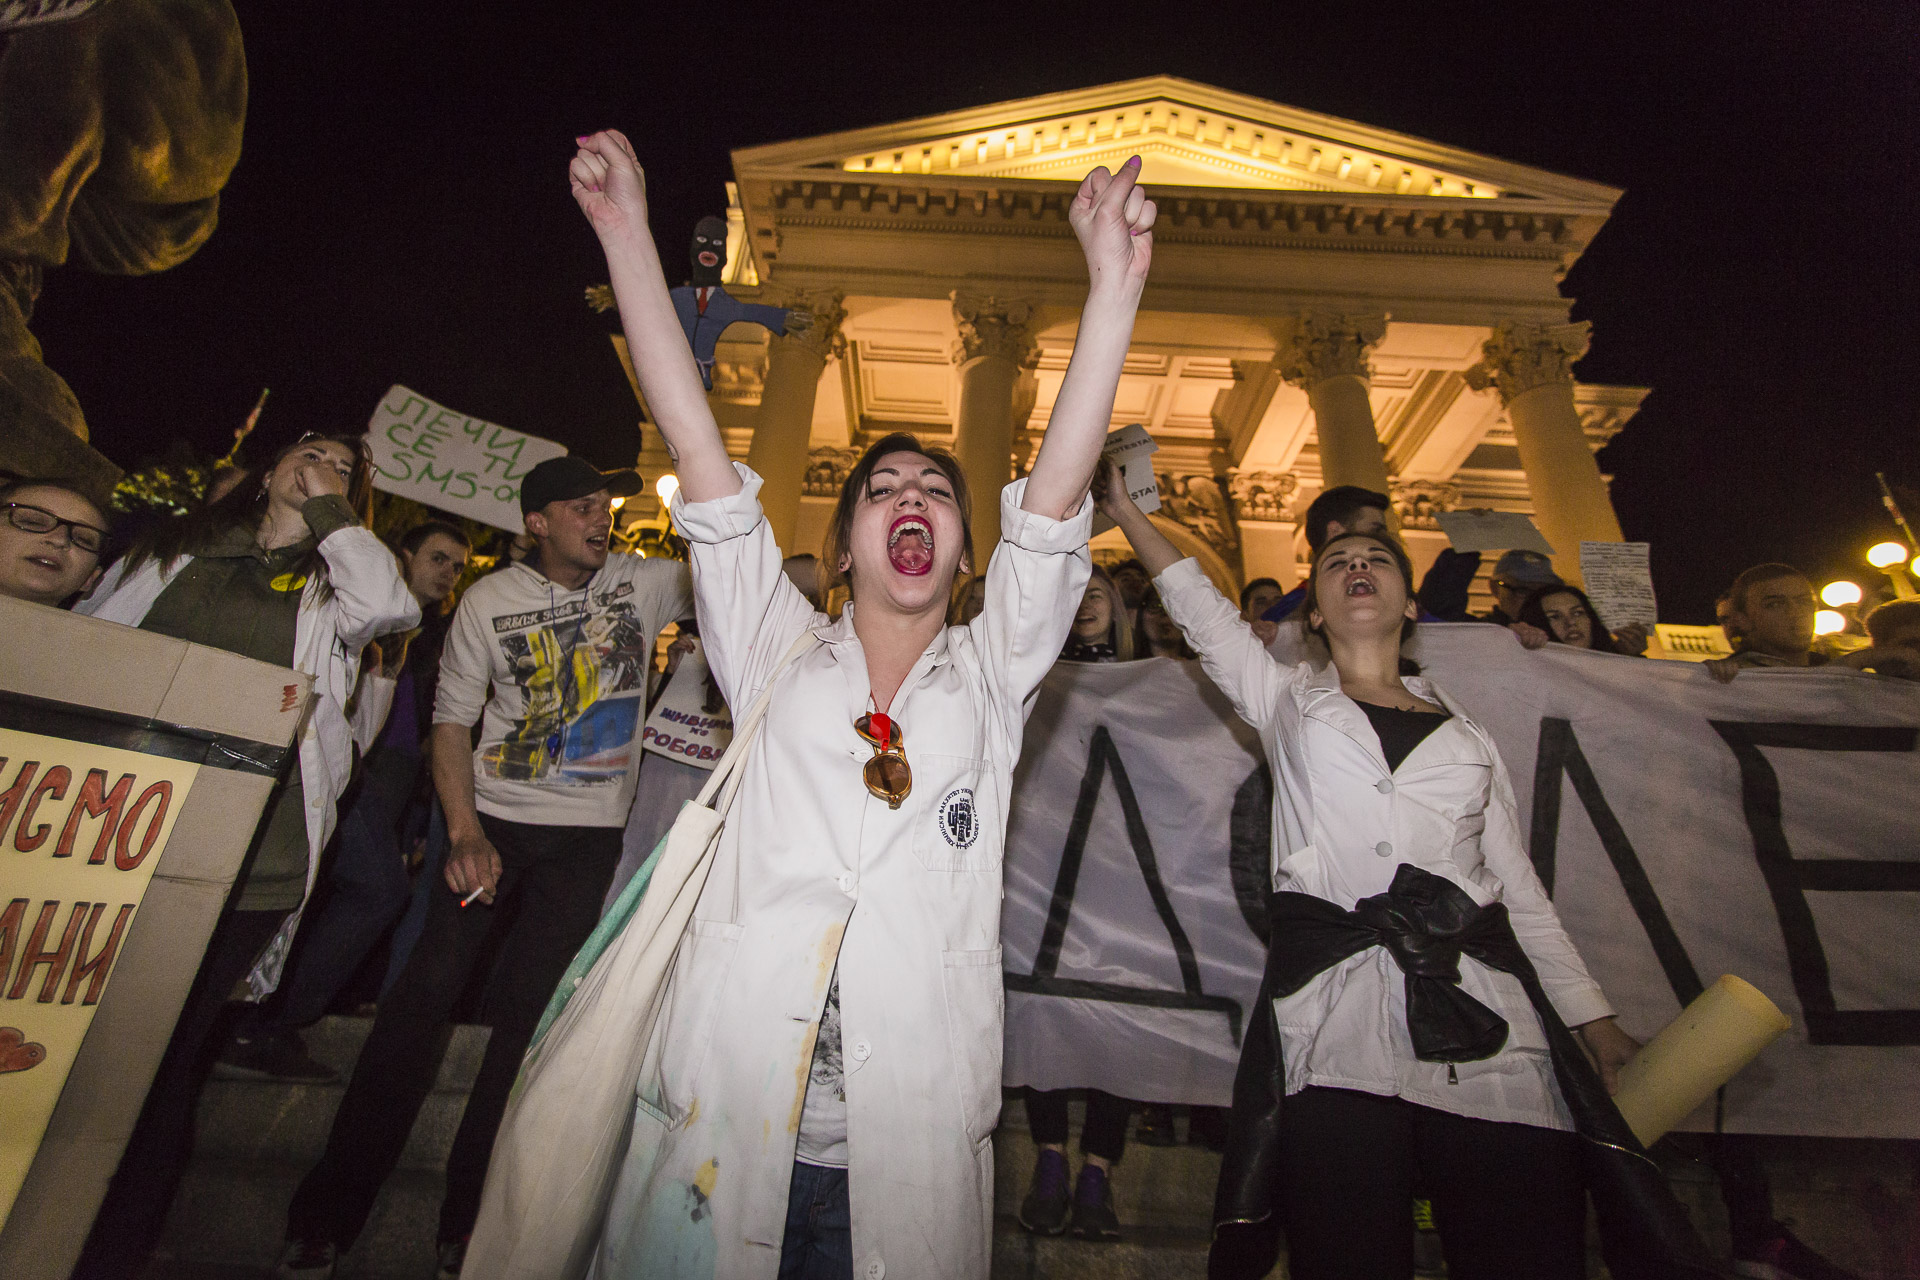 Protesters dressed like a doctor simbolize the increasing emigration of young educated professionals.